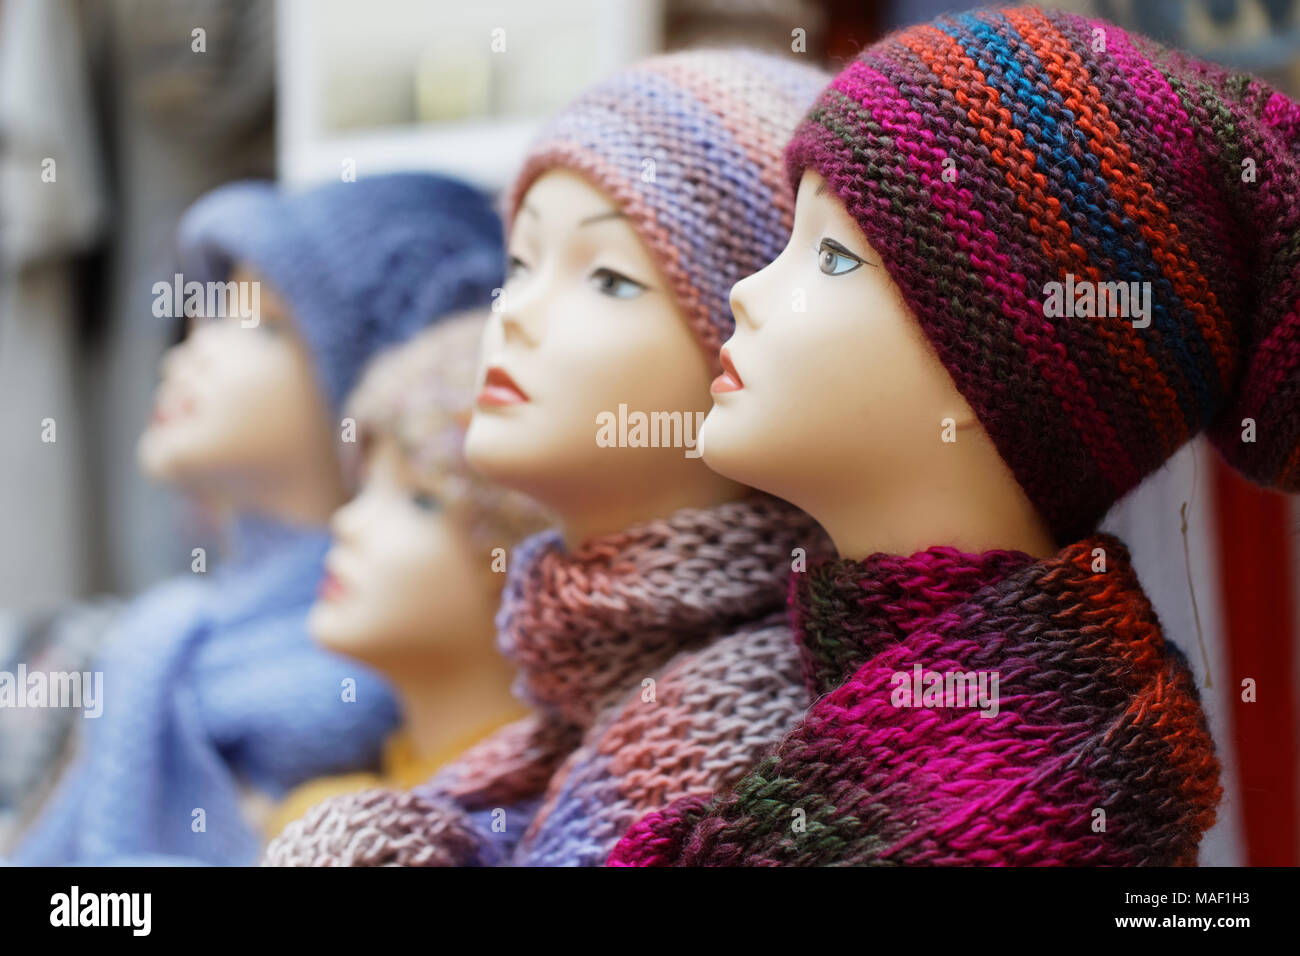 Saint-Petersburg, Russia - March 22, 2018: Knit hats and scarfs on the exhibition Craft Bazaar during TeddyFun 2018. The exhibition is held seasonally - Stock Image